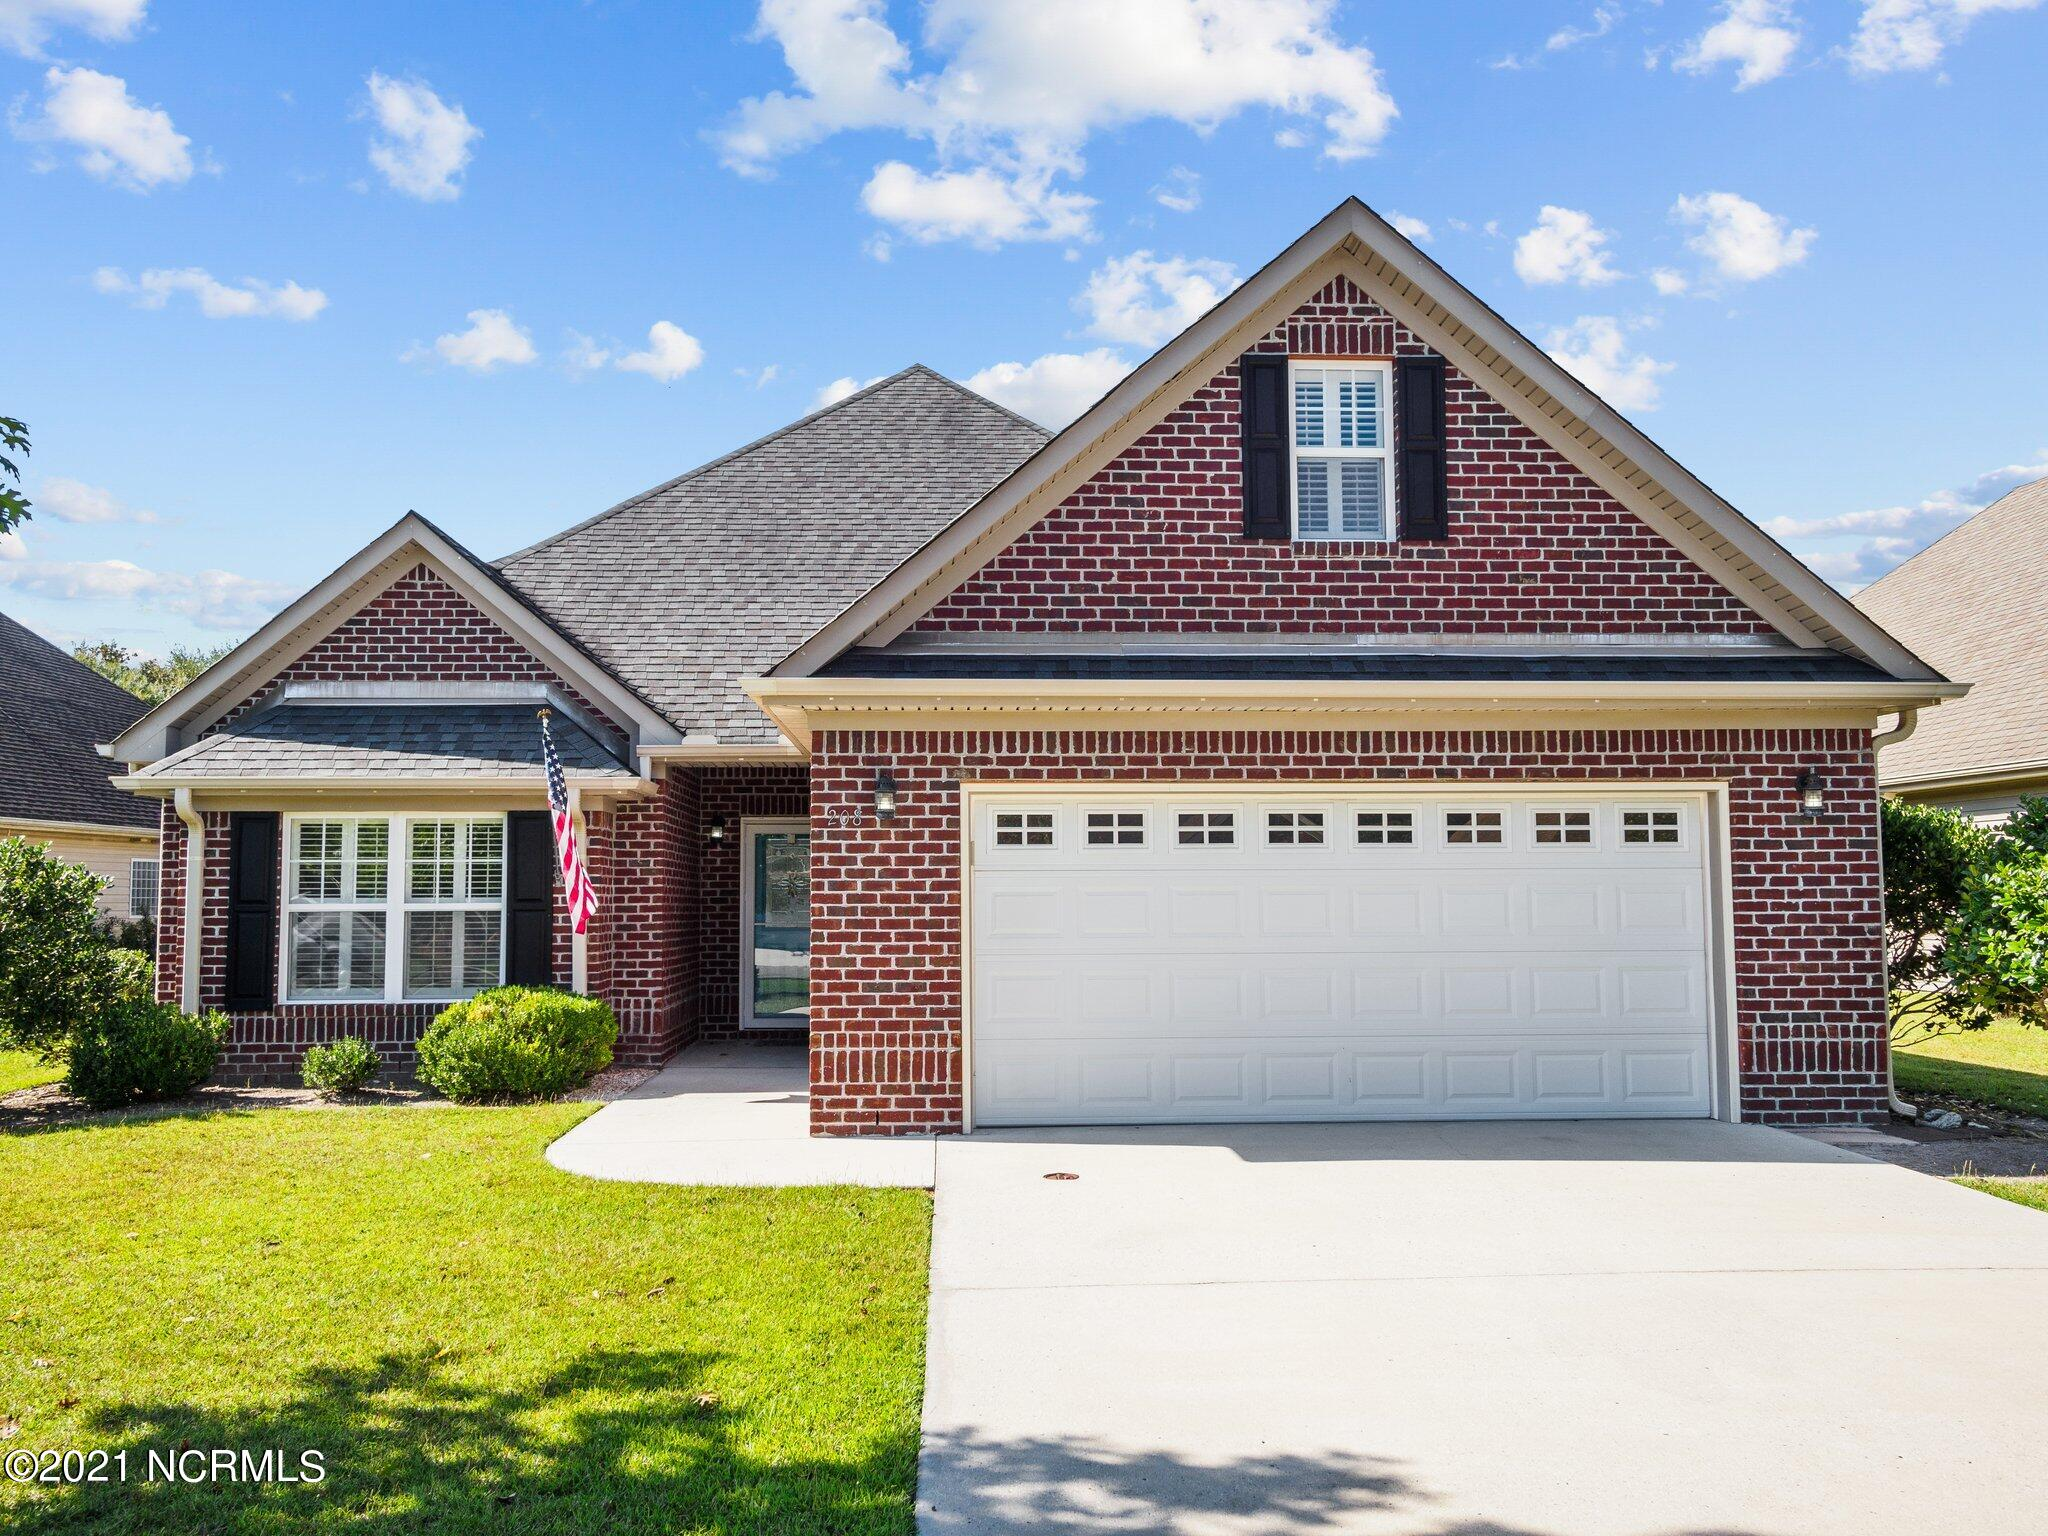 Check out this one and half story brick 3 bedroom 2 full and 2 half baths house located close to MARSOC & MCB Camp LeJeune Sneads Ferry gates and Court House Bay area. You're also close to the beach, shopping as well as about half way between Jacksonville & Wilmington. The open living kitchen area with a large granite bar and plenty of countertop & cabinets is waiting for you to put out a spread for your entertaining. You'll have a large screen porch just off the living area as well as from your master ensuite! Upstairs is a bonus room and half bath for your office, game room whatever works for you. Remember there is a fenced in back yard. Call to see if this is the house for you!